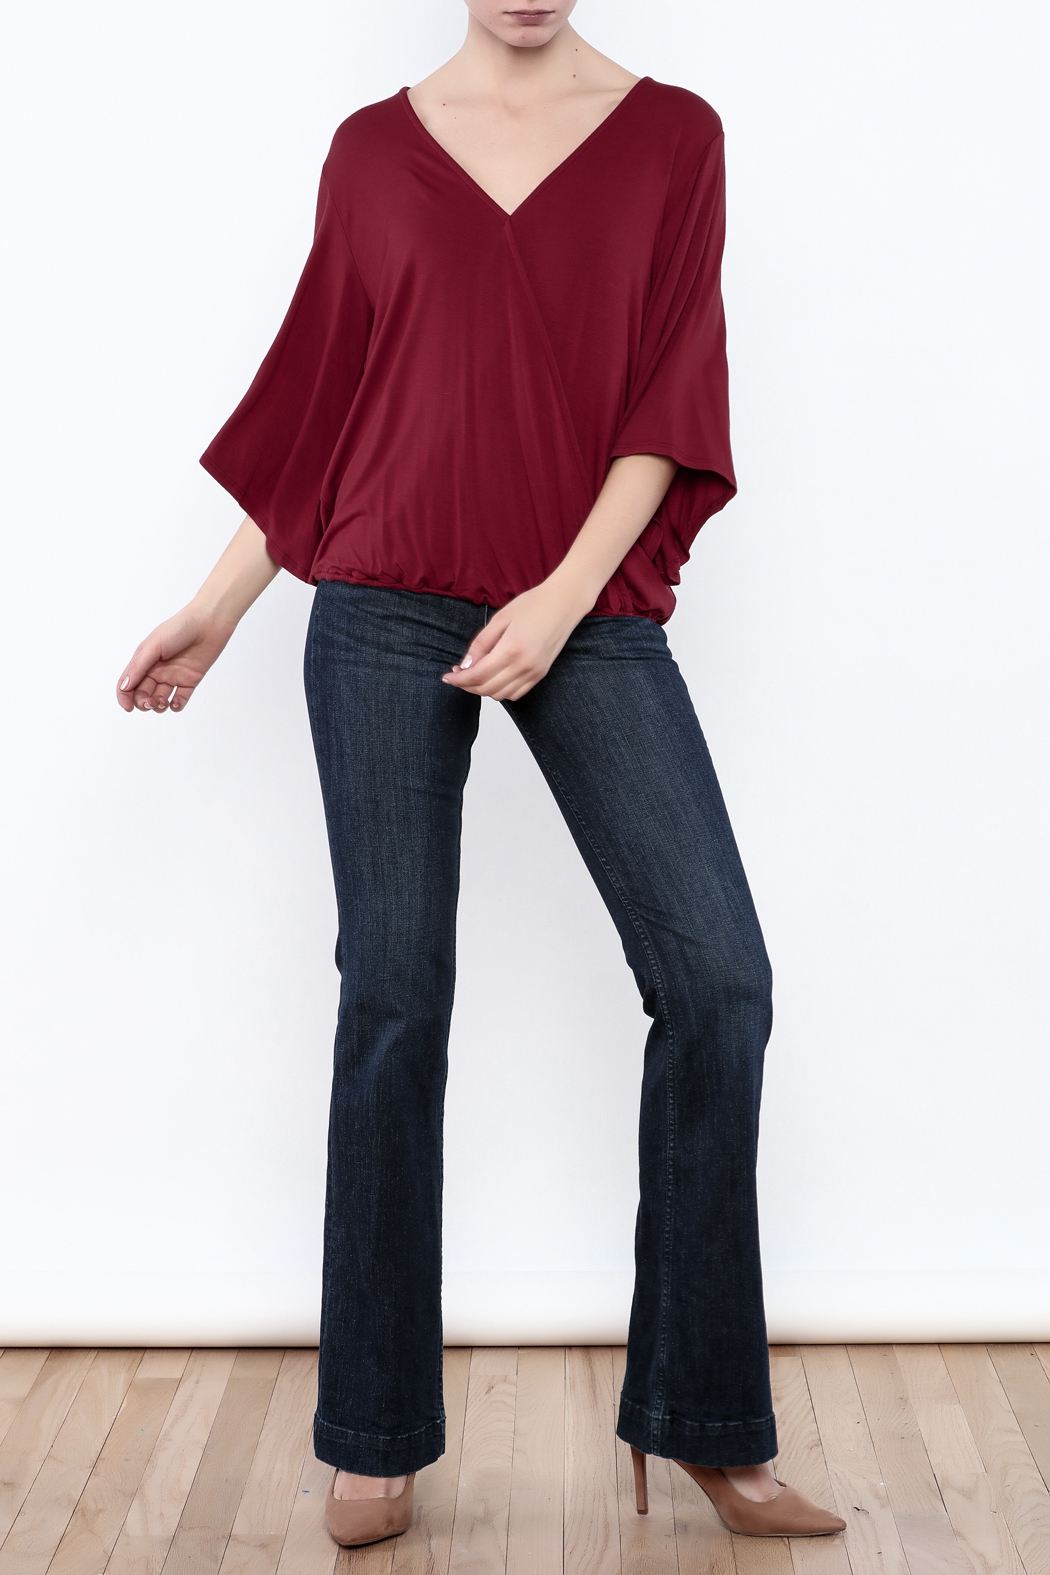 Veronica M Versatile Surplus Top - Front Full Image